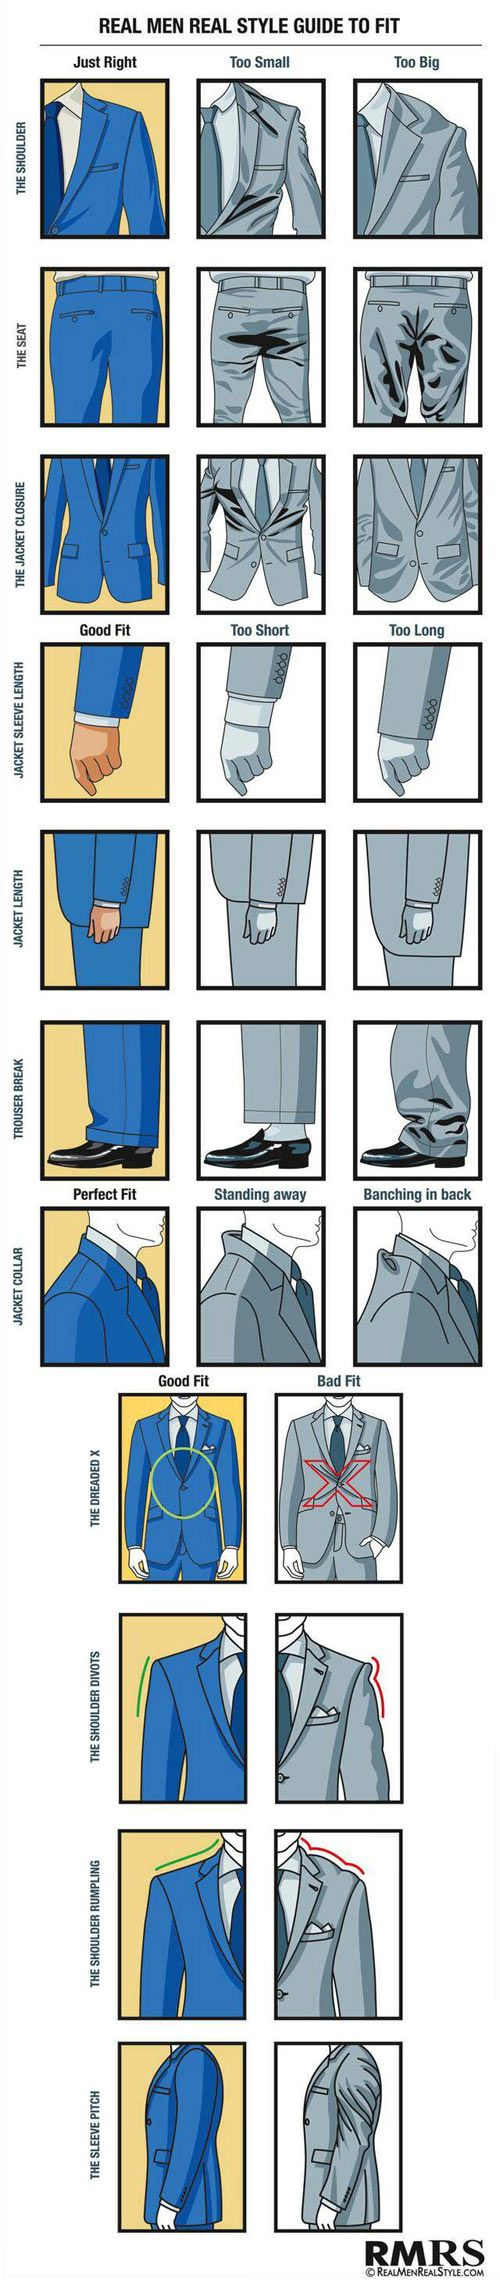 Men's guide to proper fitting of suits…